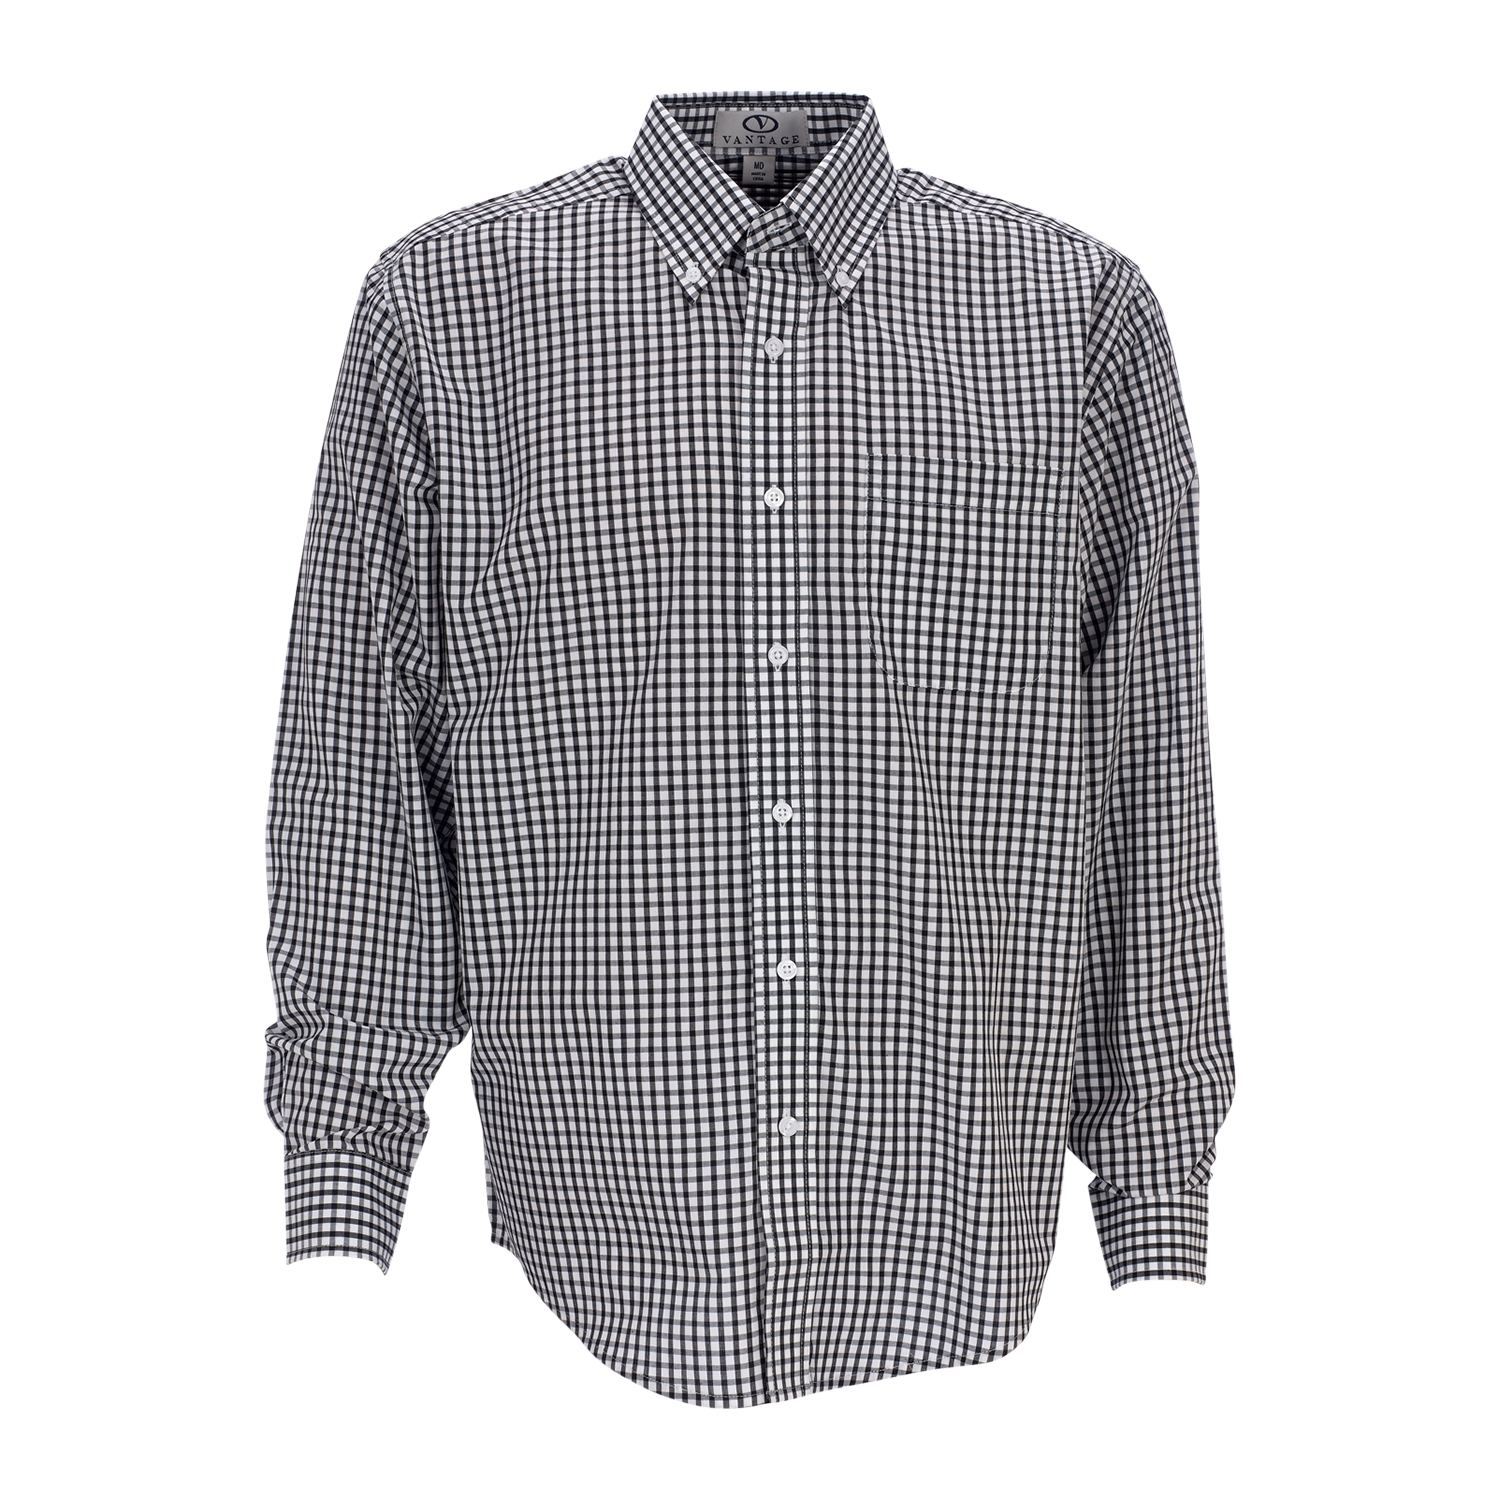 Vantage 1107 - Men's Easy-Care Gingham Check Shirt